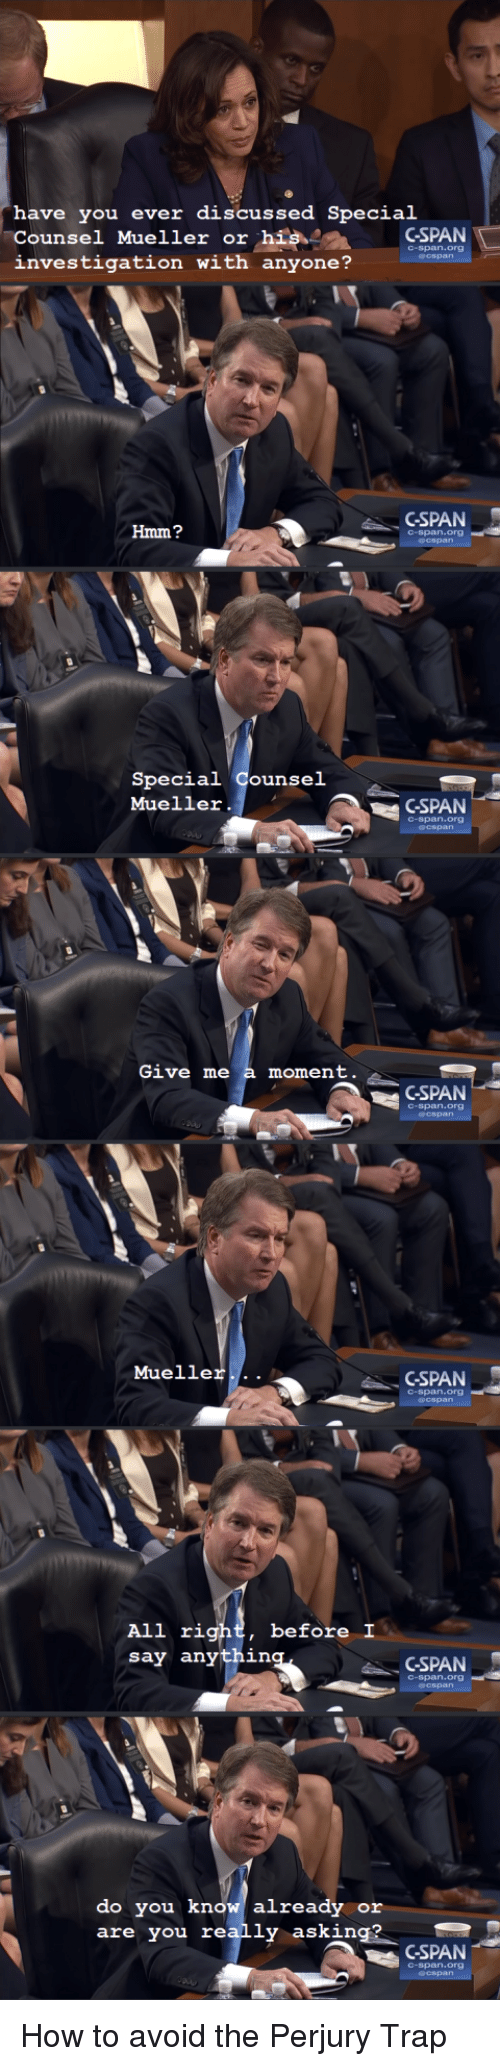 cspan: have you ever discussed Special  Counsel Mueller or hisCSPAN  investigation with anyone?  C-span.org  GSPAN  Hmm?  C-span.org  Special Counsel  Mueller.  GSPAN  C-span.org  Give me a moment  GSPAN  C-span.org  Mueller...  GSPAN  C-span.org  before I  All rig  say anythin  CSPAN  C-span.org  do you know already or  are you really asking?  CSPAN  C-span.org How to avoid the Perjury Trap